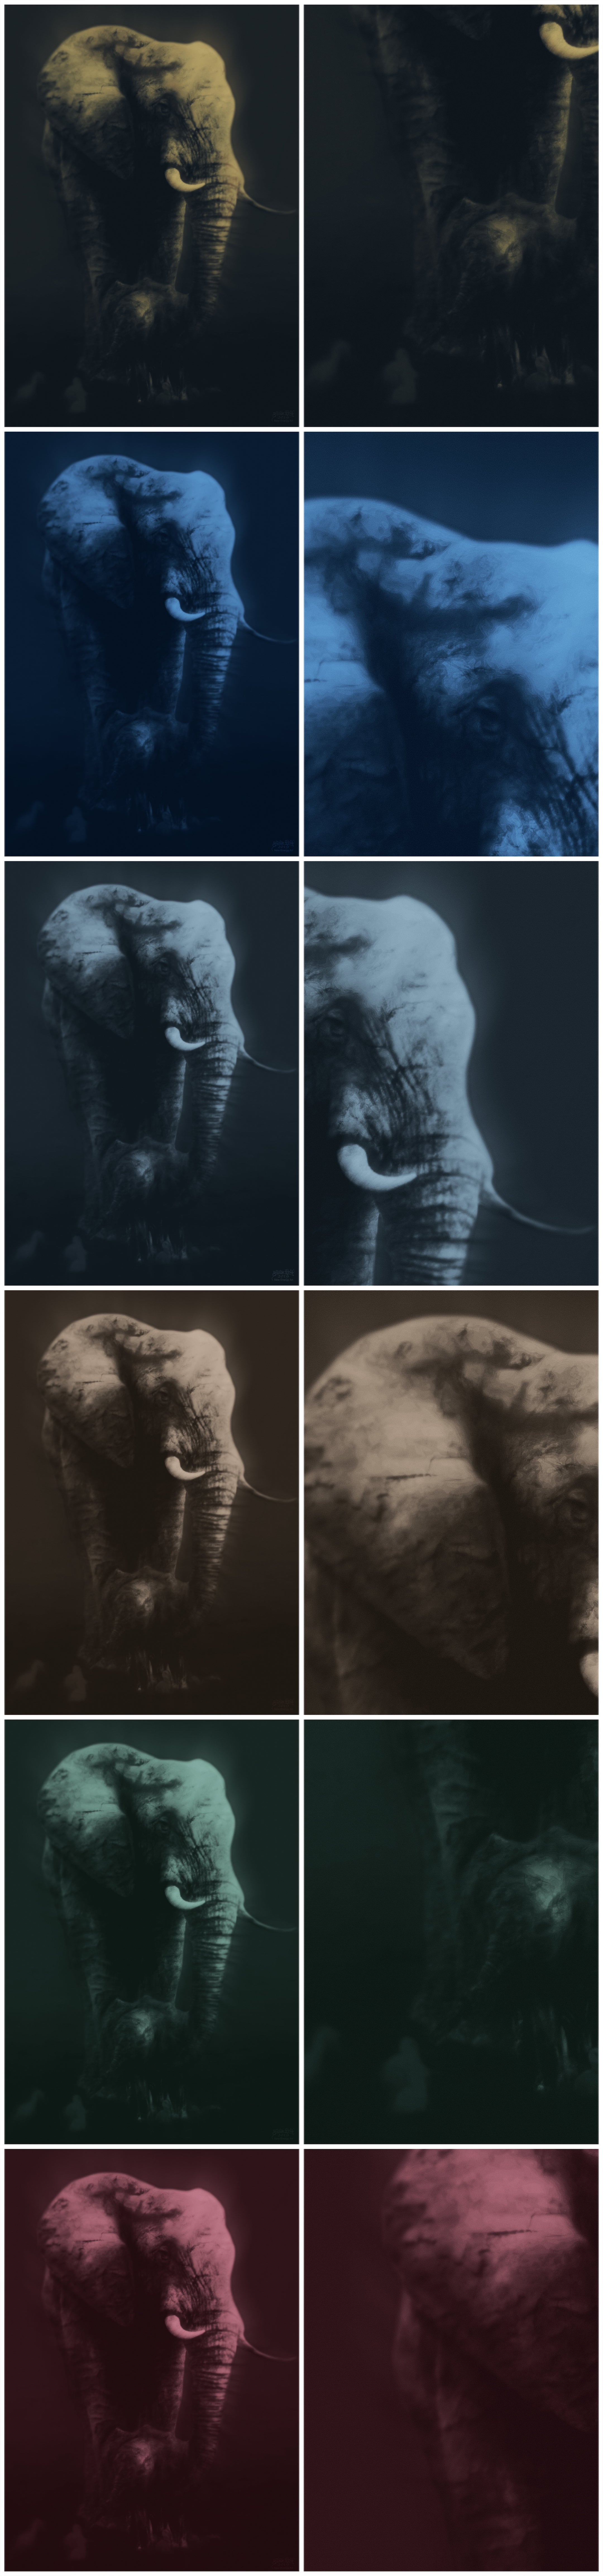 The Elephant and her Baby v7 COLLECTION